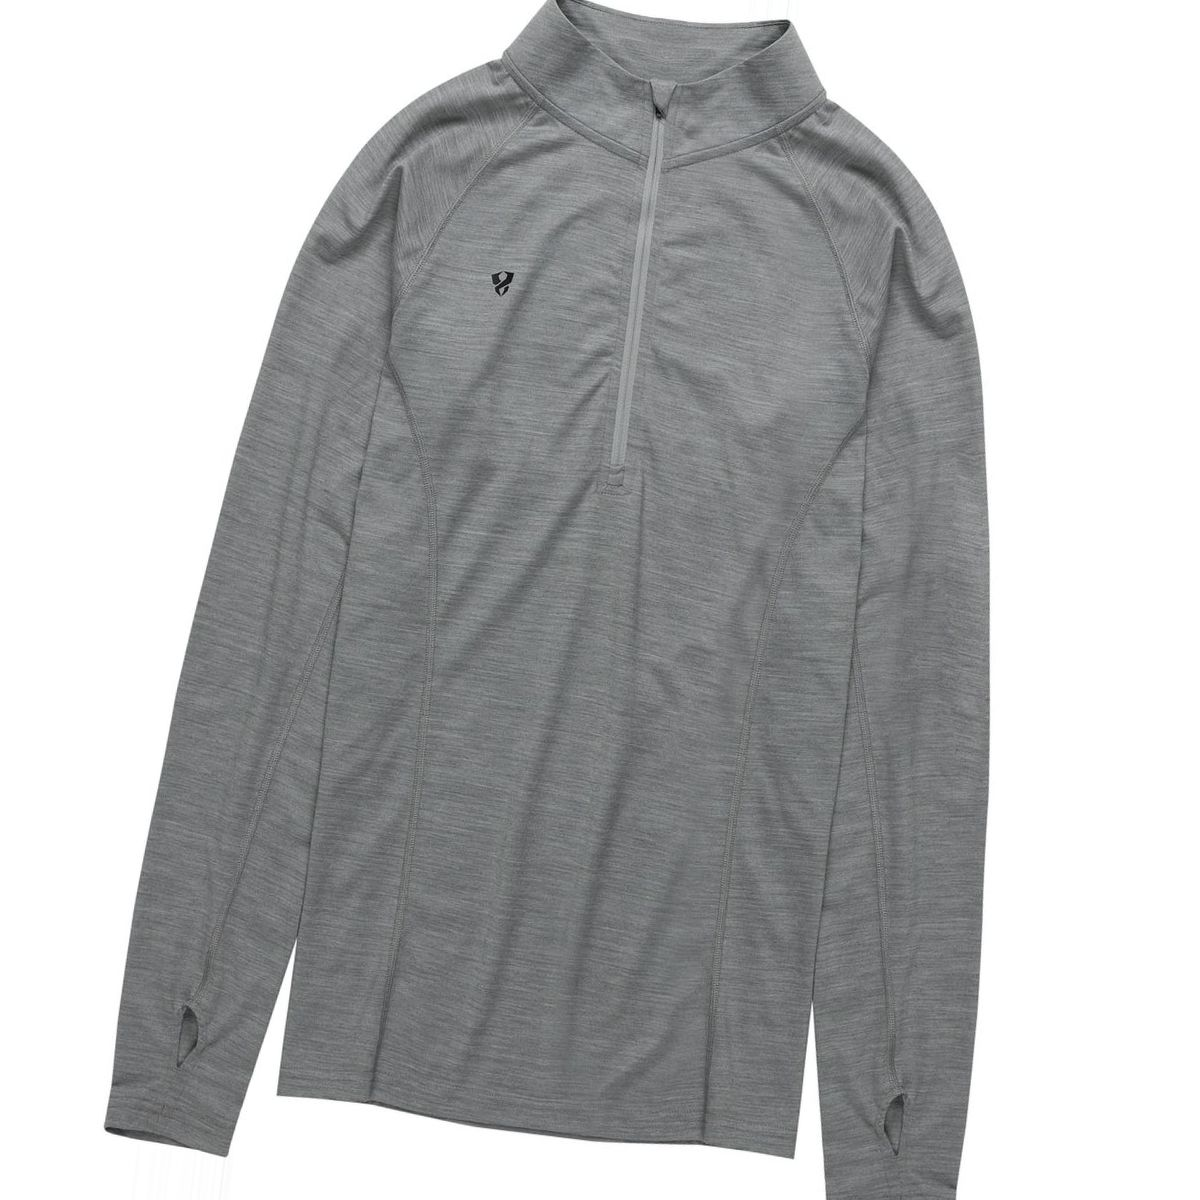 Stoic Merino Blend 1/4 Zip Baselayer Top - Men's